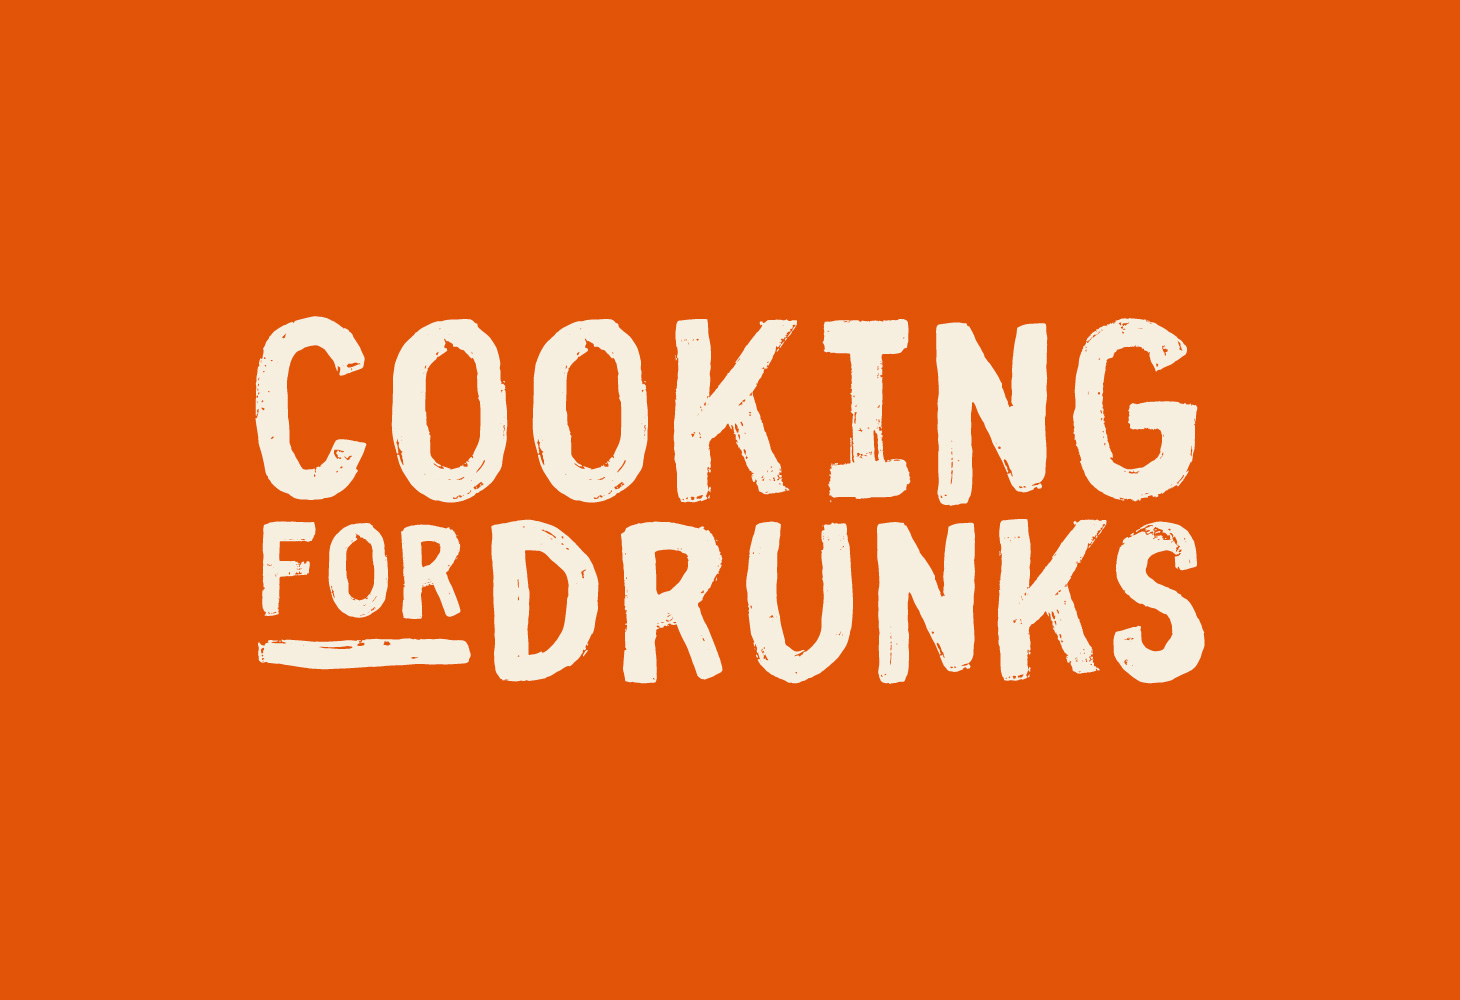 Cooking for Drunks - Logotype